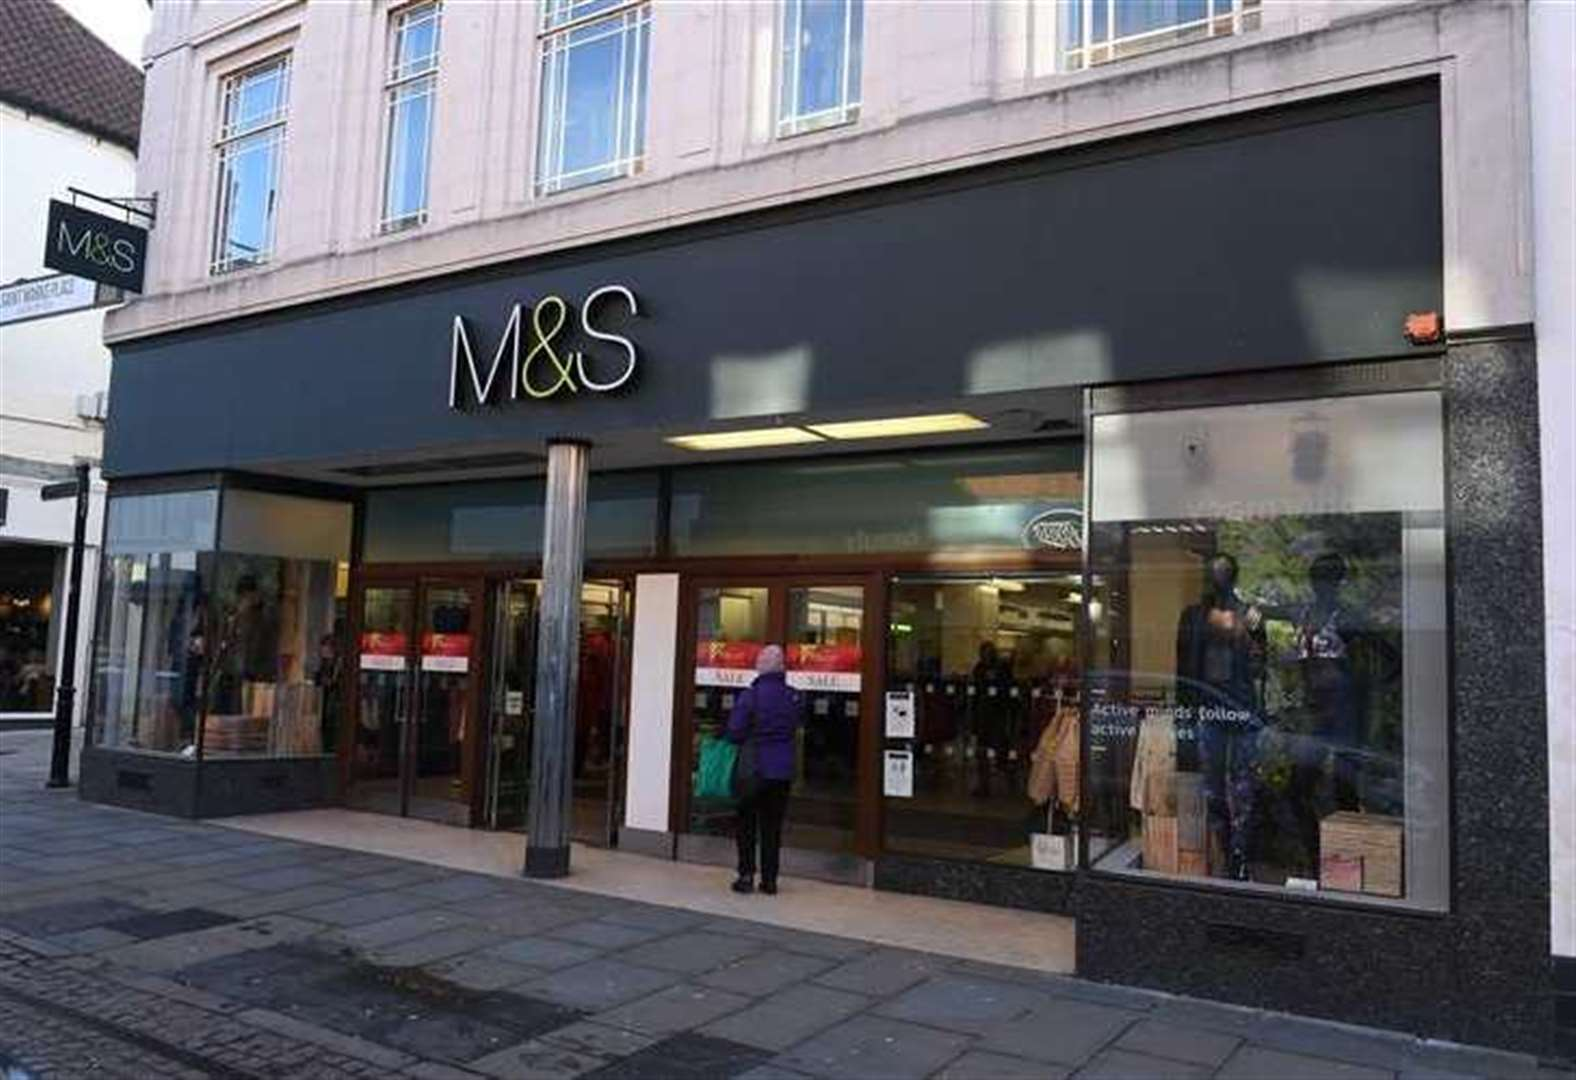 POLL: Has the closure of M&S affected the town's businesses?